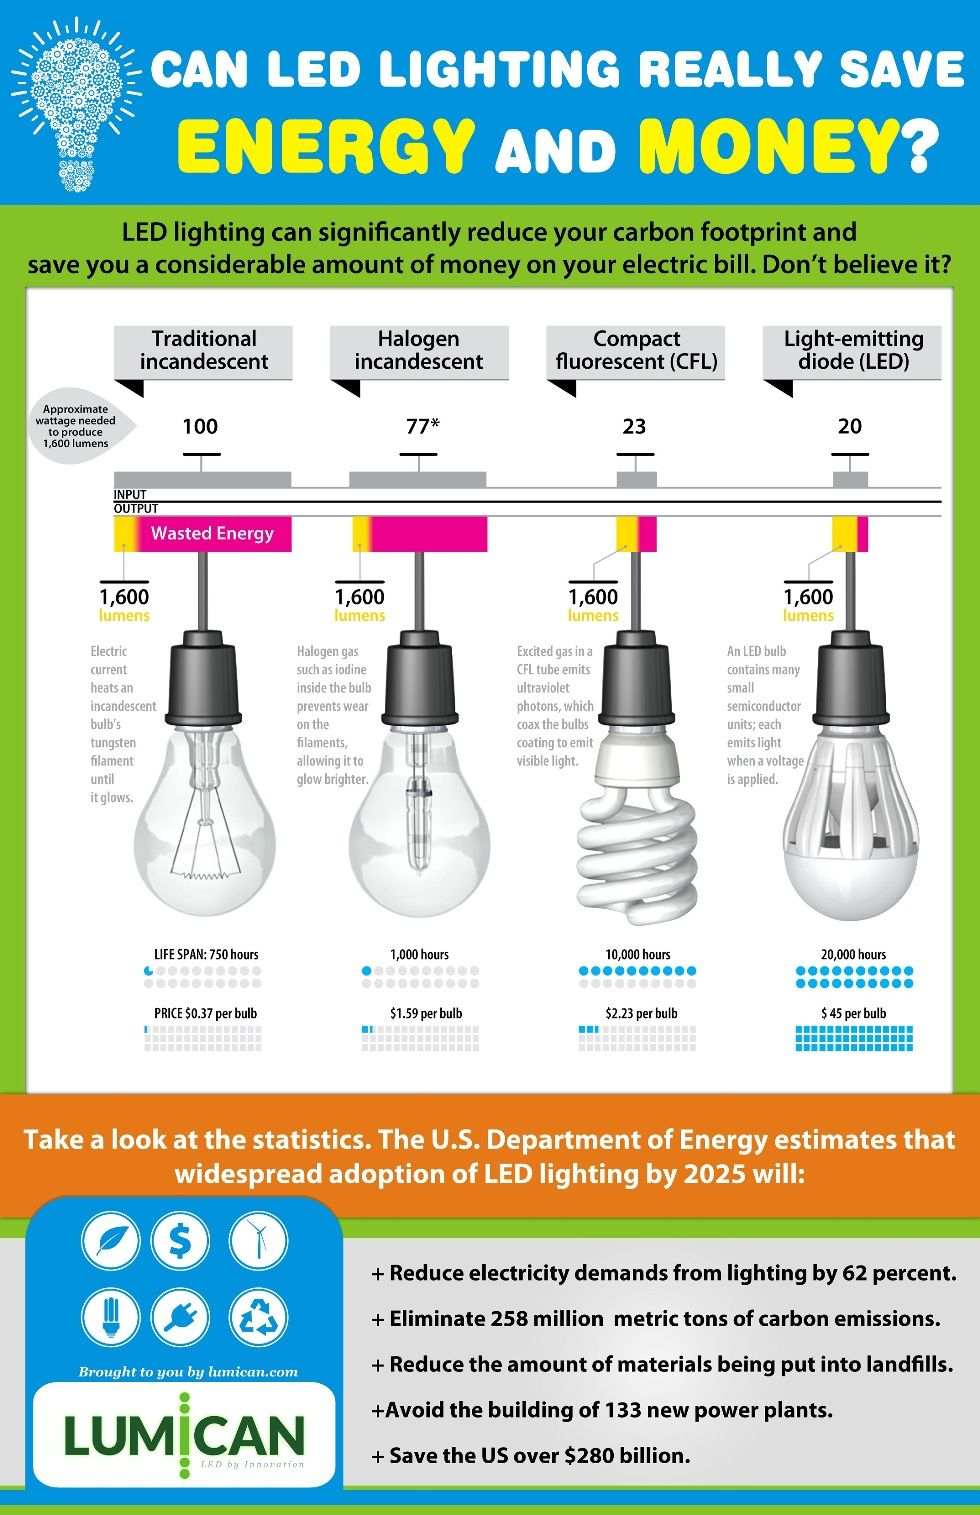 Led lighting saving energy and money saving money for Energy conservation facts